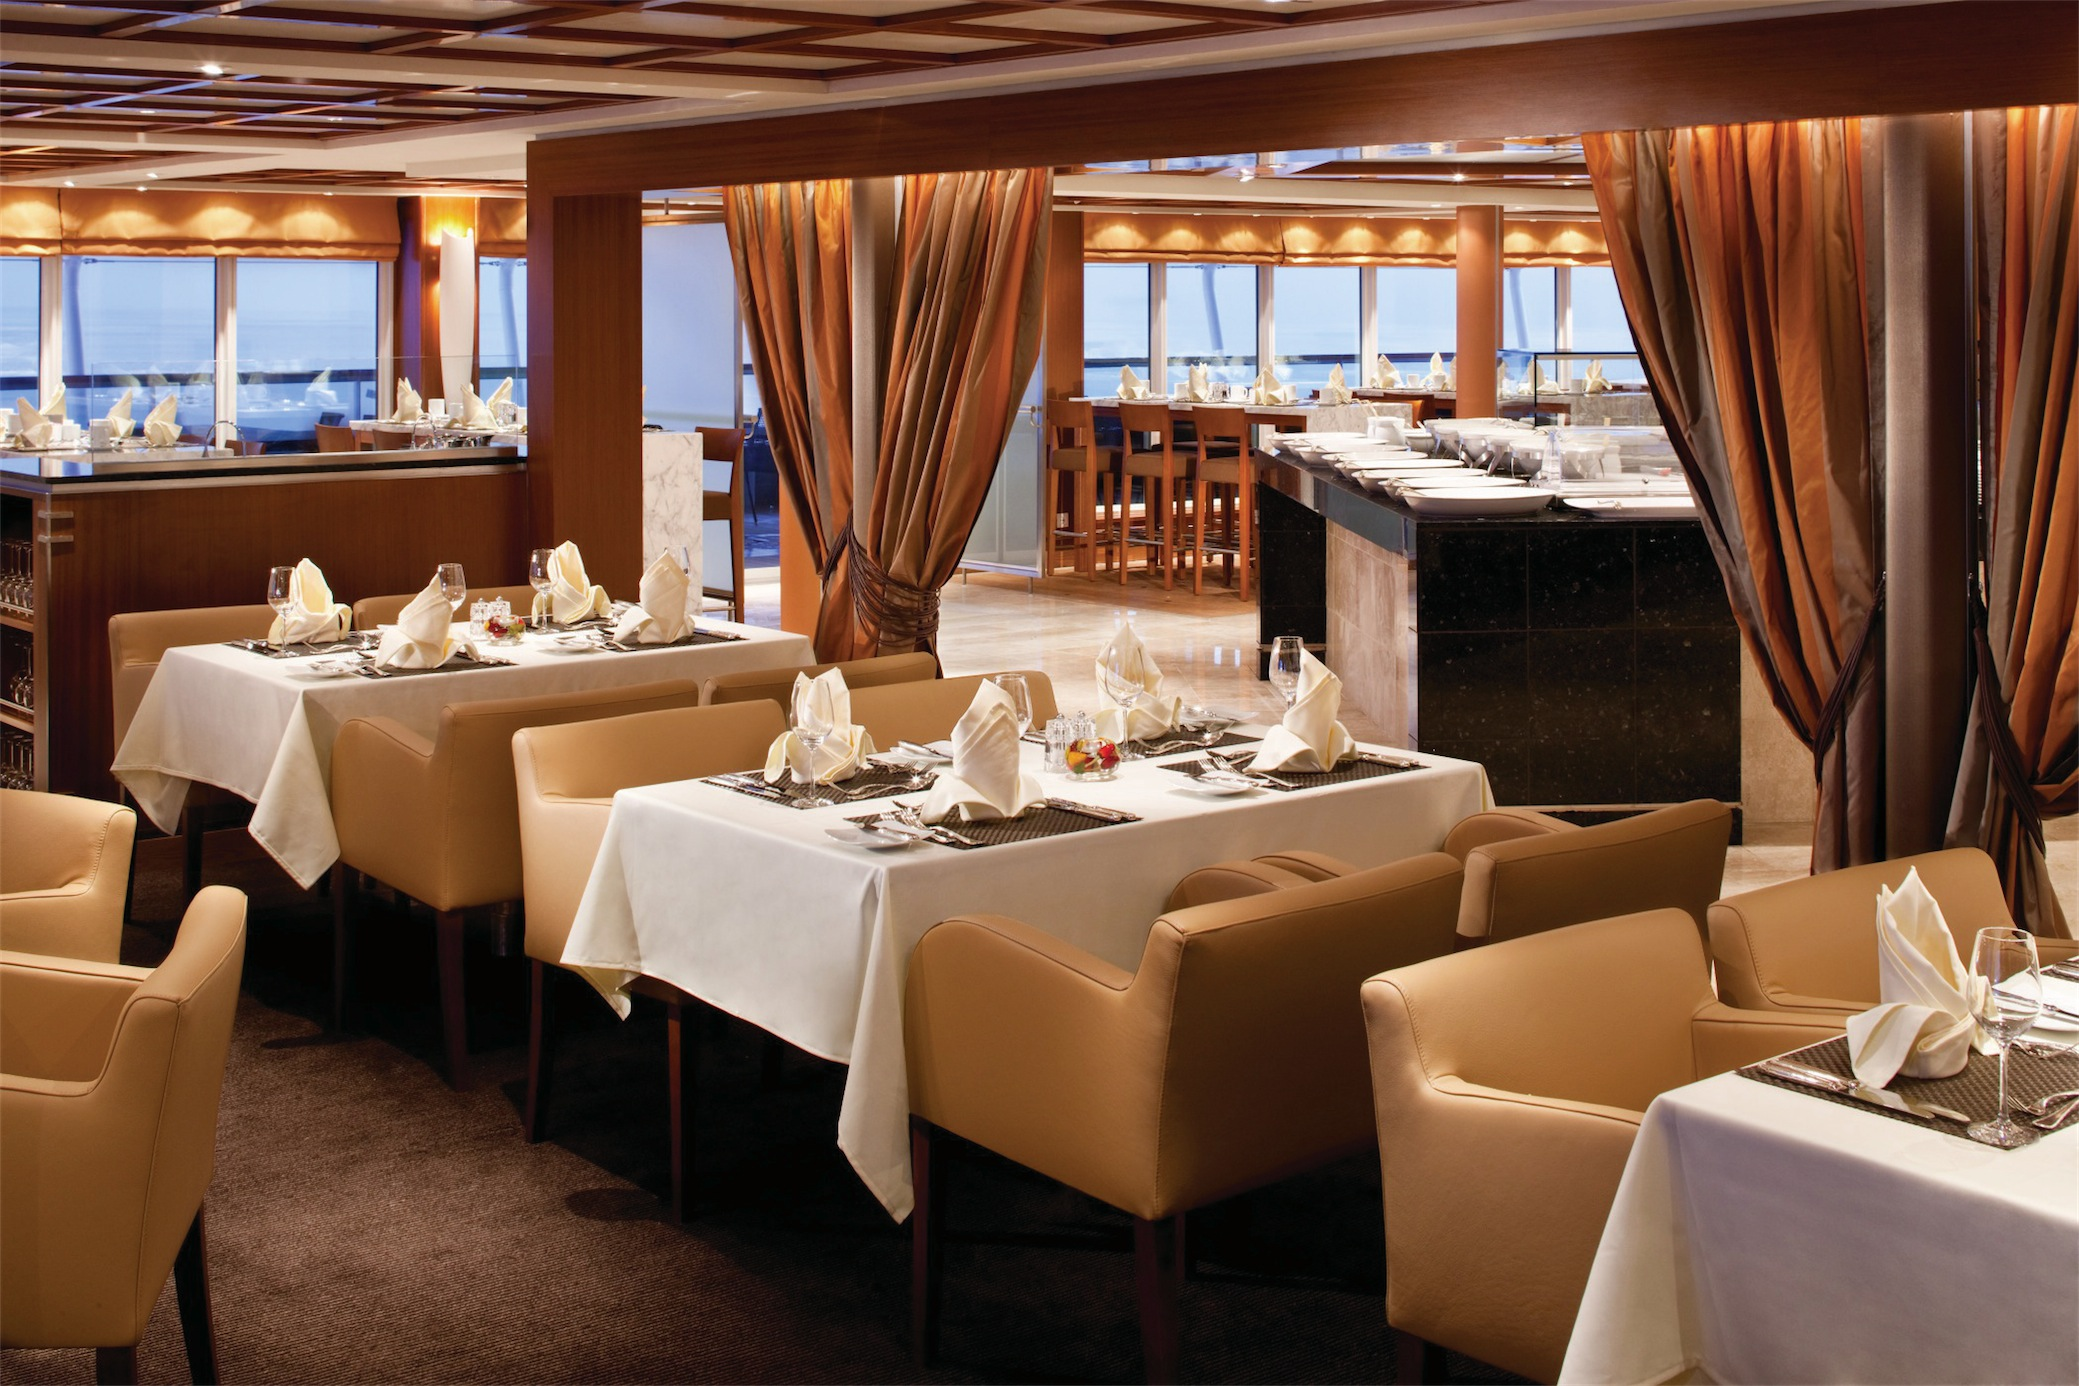 Seabourn Odyssey Class Interior The Colonnade 2.jpg